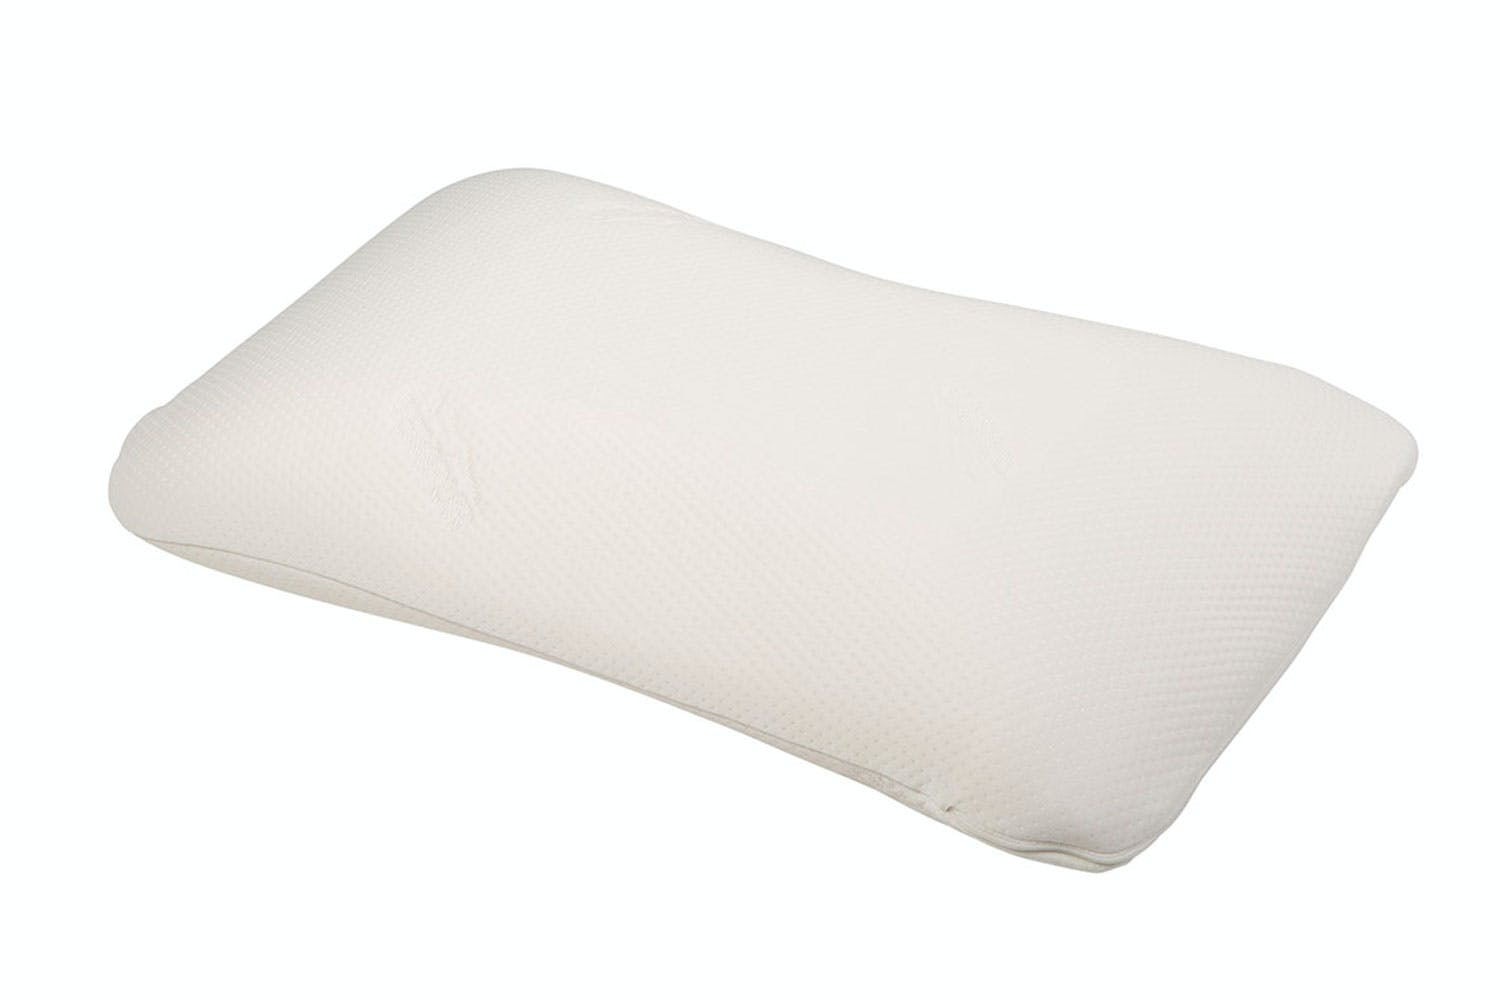 Symphony Pillow - Large - Tempur